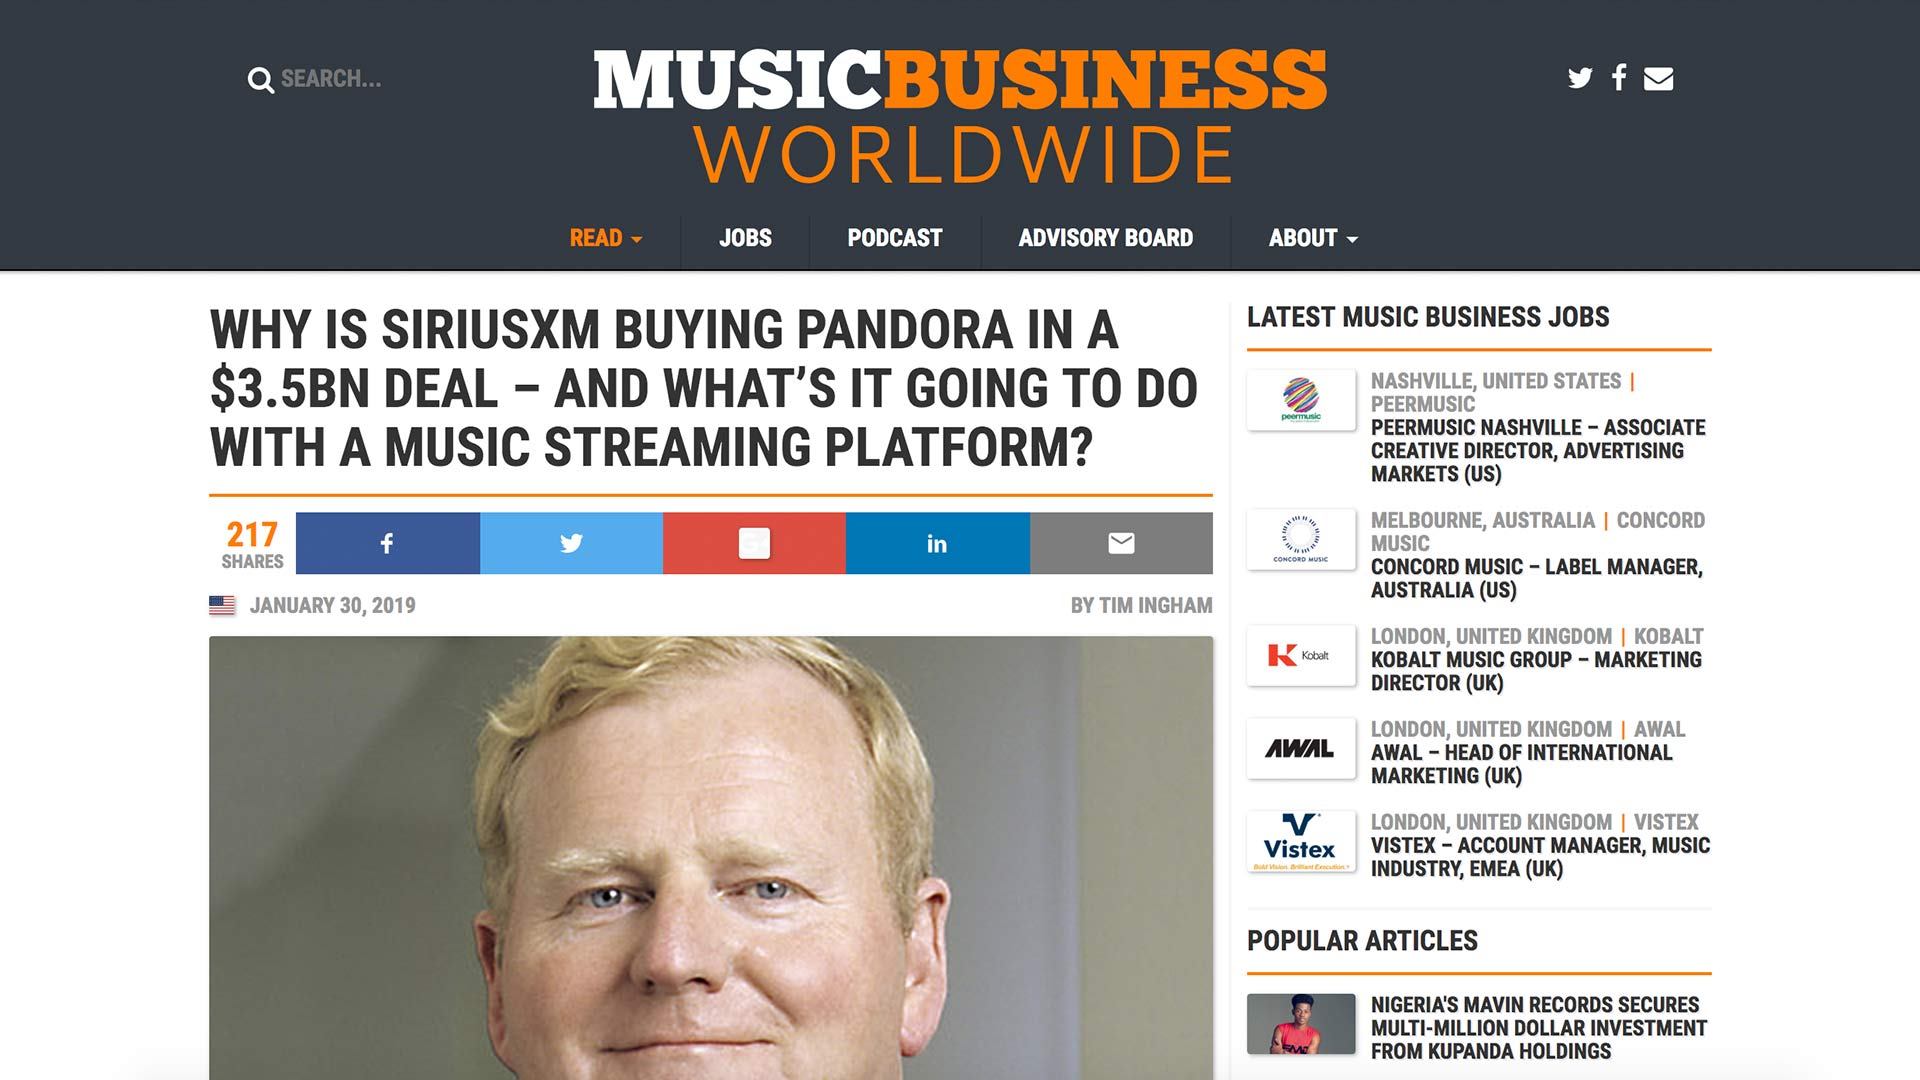 Fairness Rocks News WHY IS SIRIUSXM BUYING PANDORA IN A $3.5BN DEAL – AND WHAT'S IT GOING TO DO WITH A MUSIC STREAMING PLATFORM?